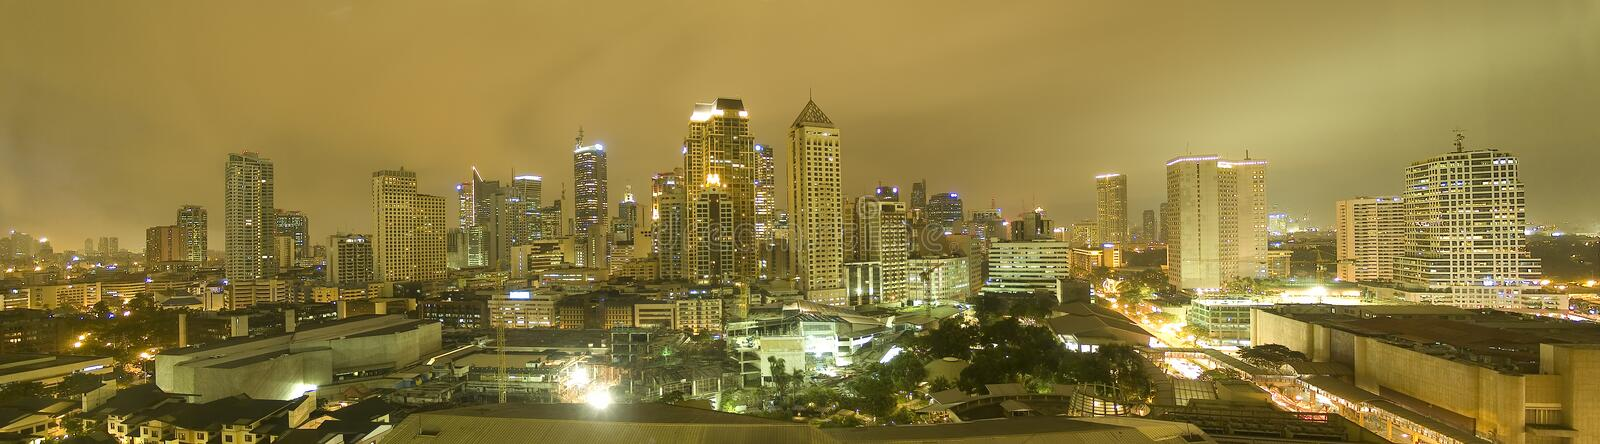 Manila skyline at night stock images